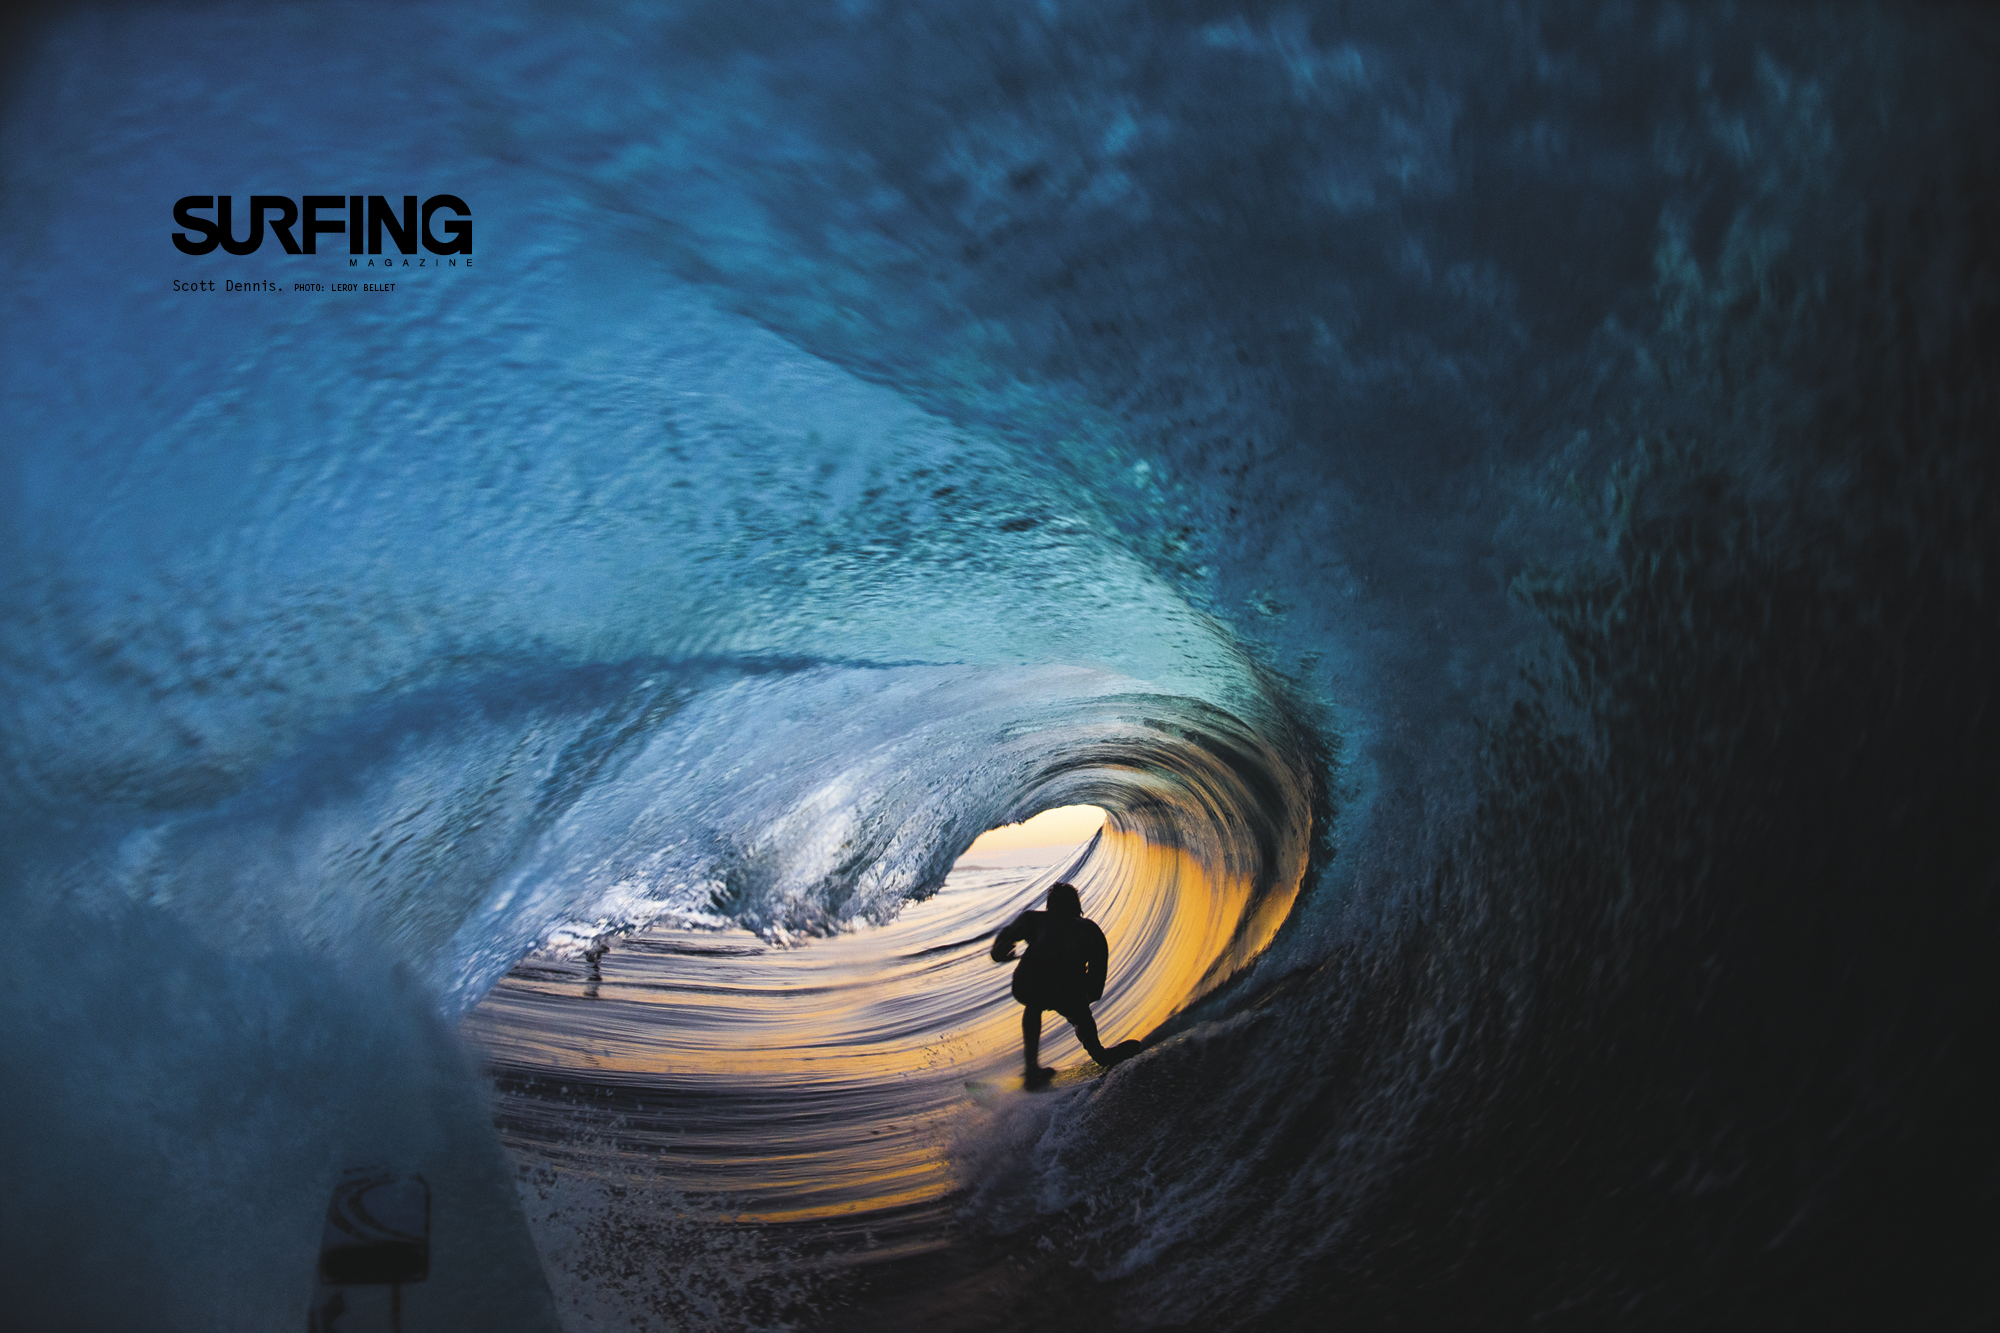 Indian Girl Wallpaper Free Download Surfing Wallpaper Issue 12 2015 Surfer Magazine